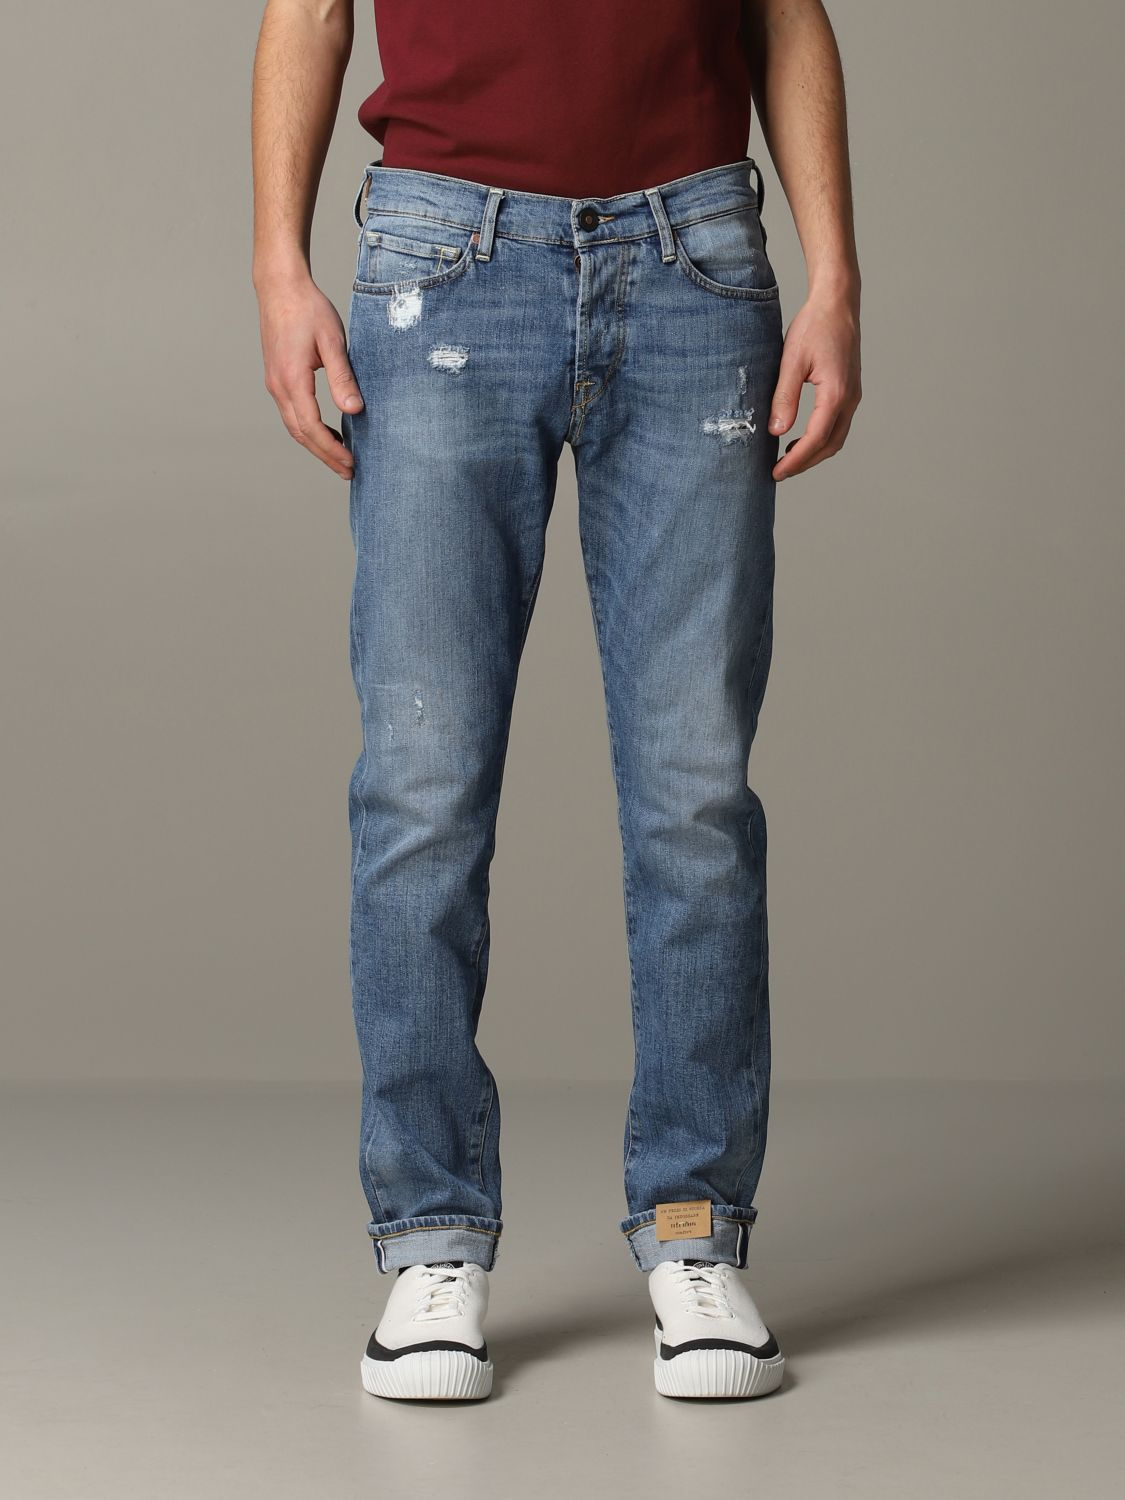 Jeans Tela Geneva in denim used stretch blue 1